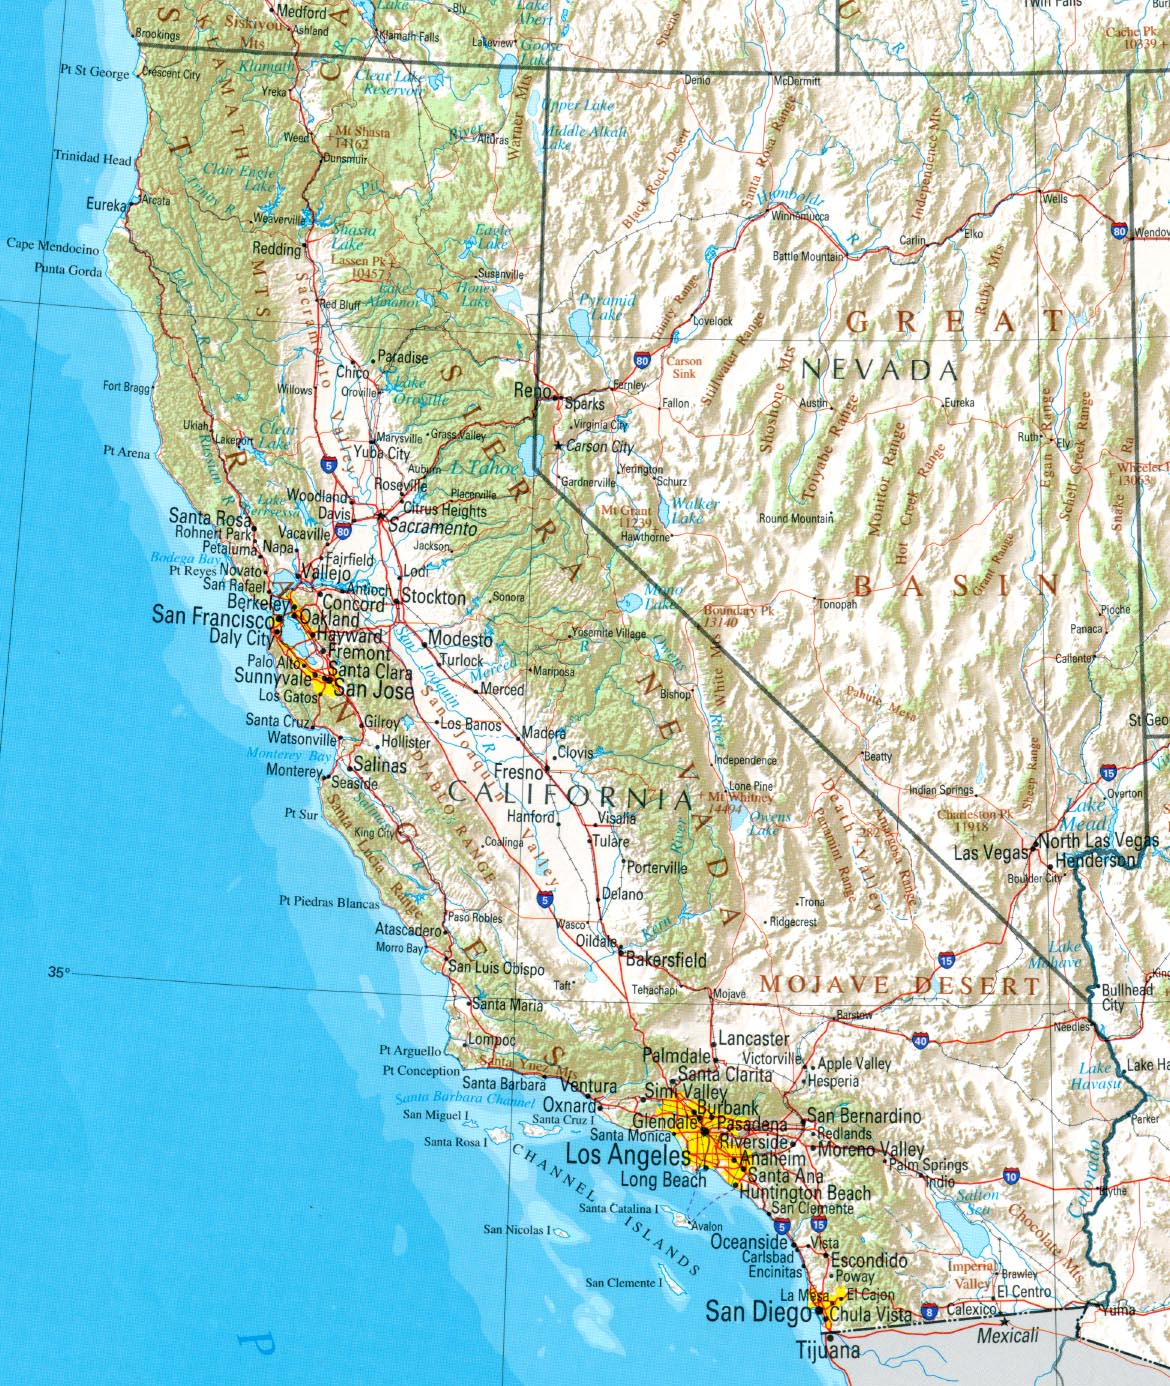 Ca Blank Map California Geographical Map - Klipy - California Geography Map